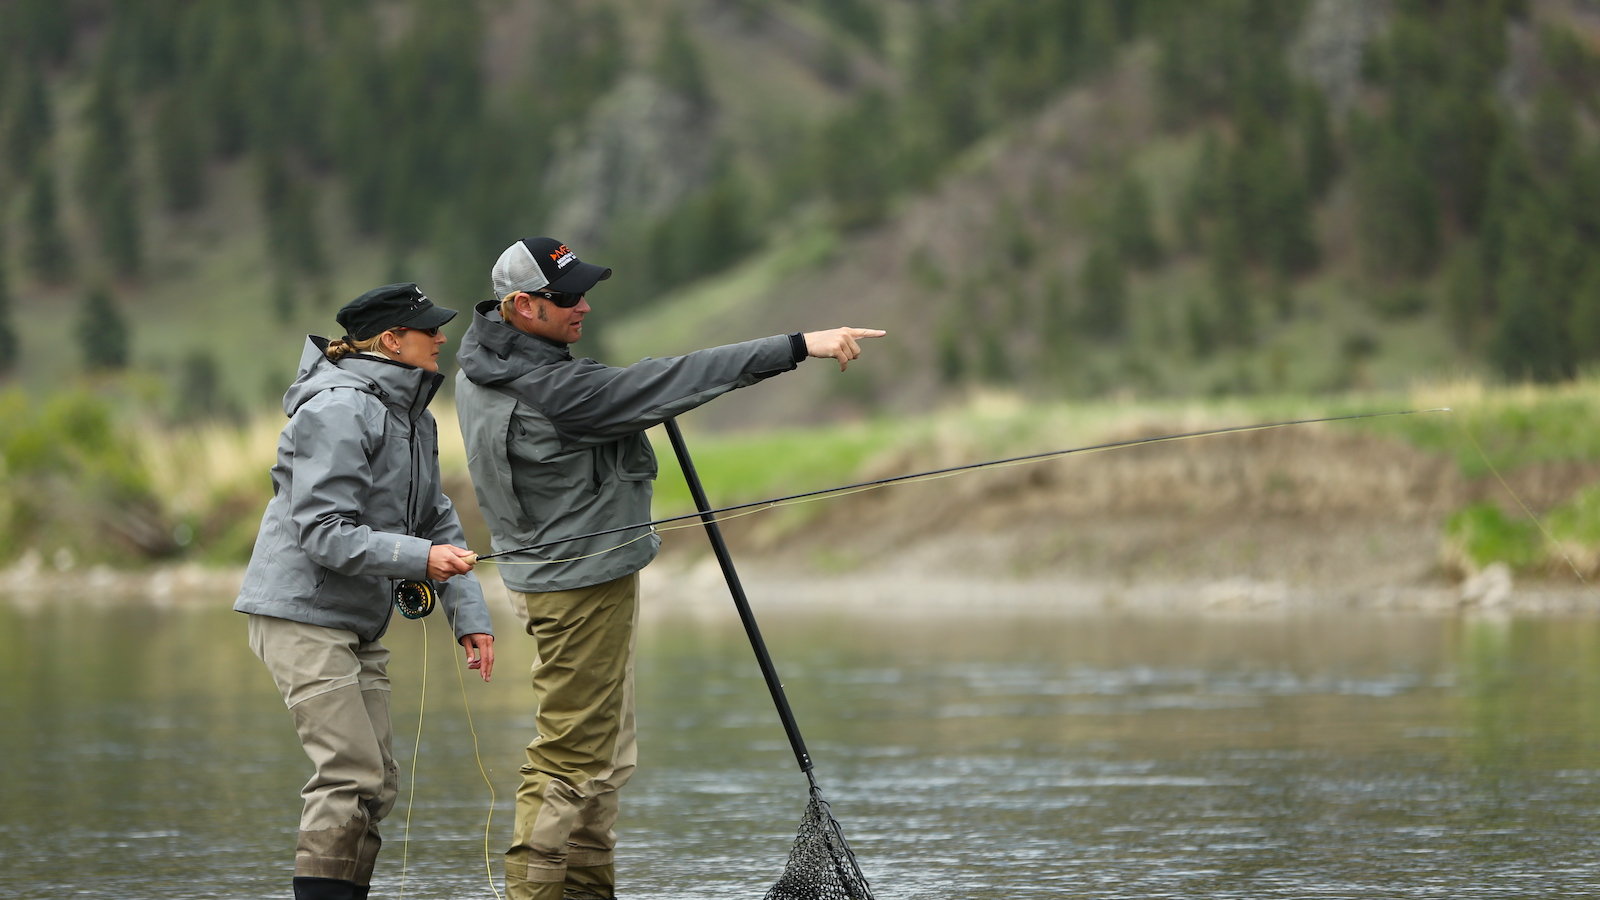 Montana Fly Fishing Guides Team | Montana Fly Fishing Guides